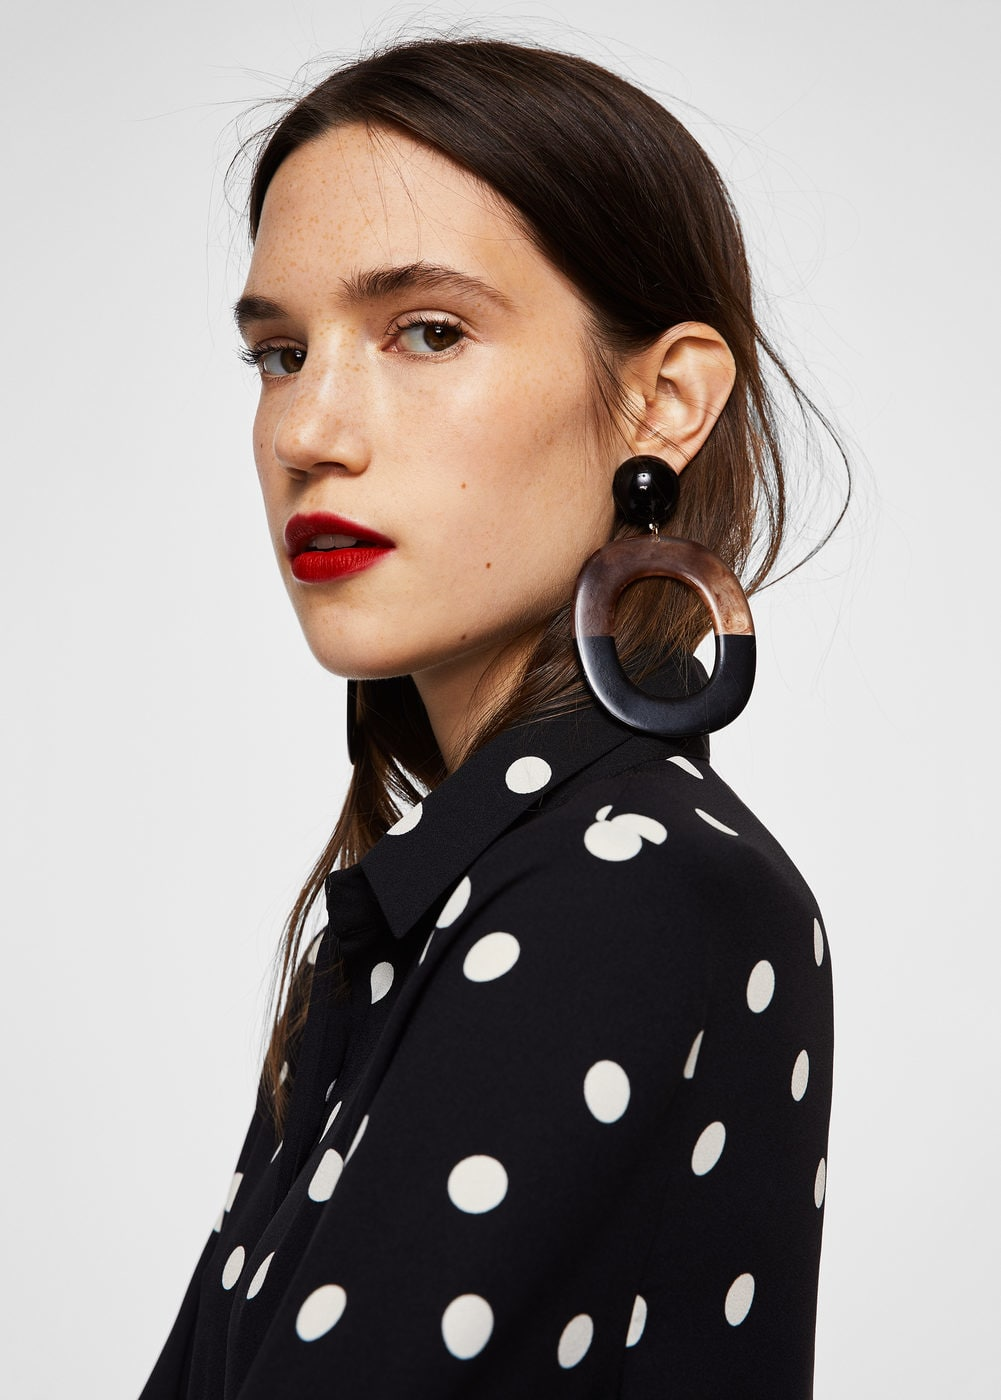 update your wardrobe for spring with the most playful trend around: polka dots! prettily printed fashion and accessories, all for under $100! #under100 #affordable #style #fashion #whattowear #polkadot